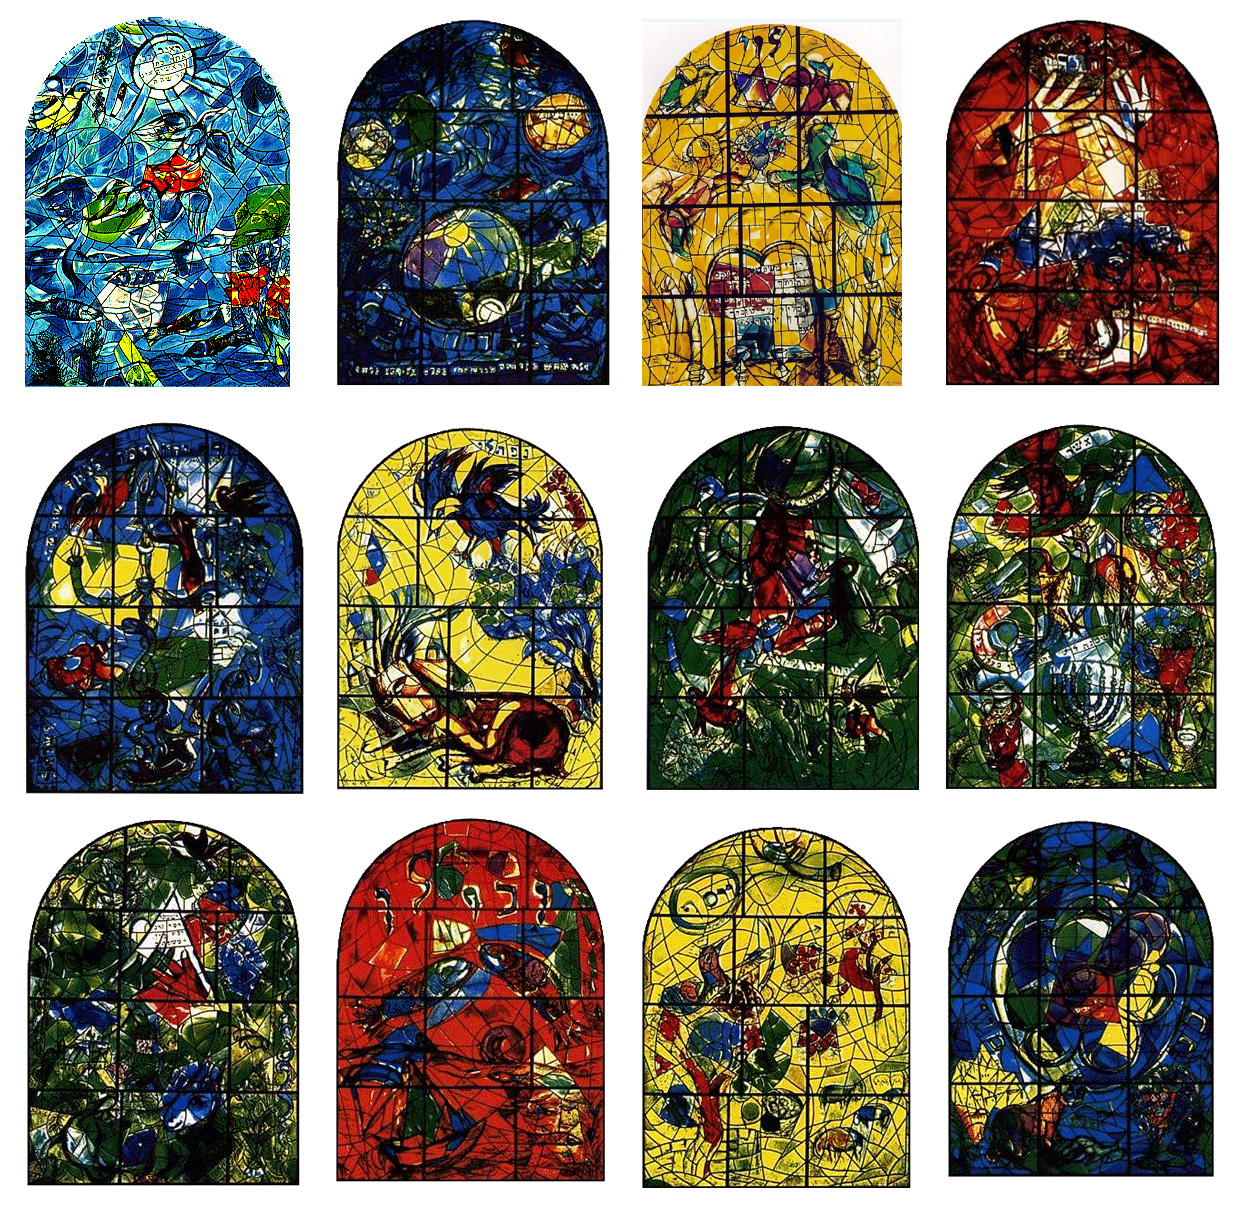 Marc Chagall. Cycle if 12 stained glass windows for Abbell Synagogue in Hadassah Medical Center. 1962